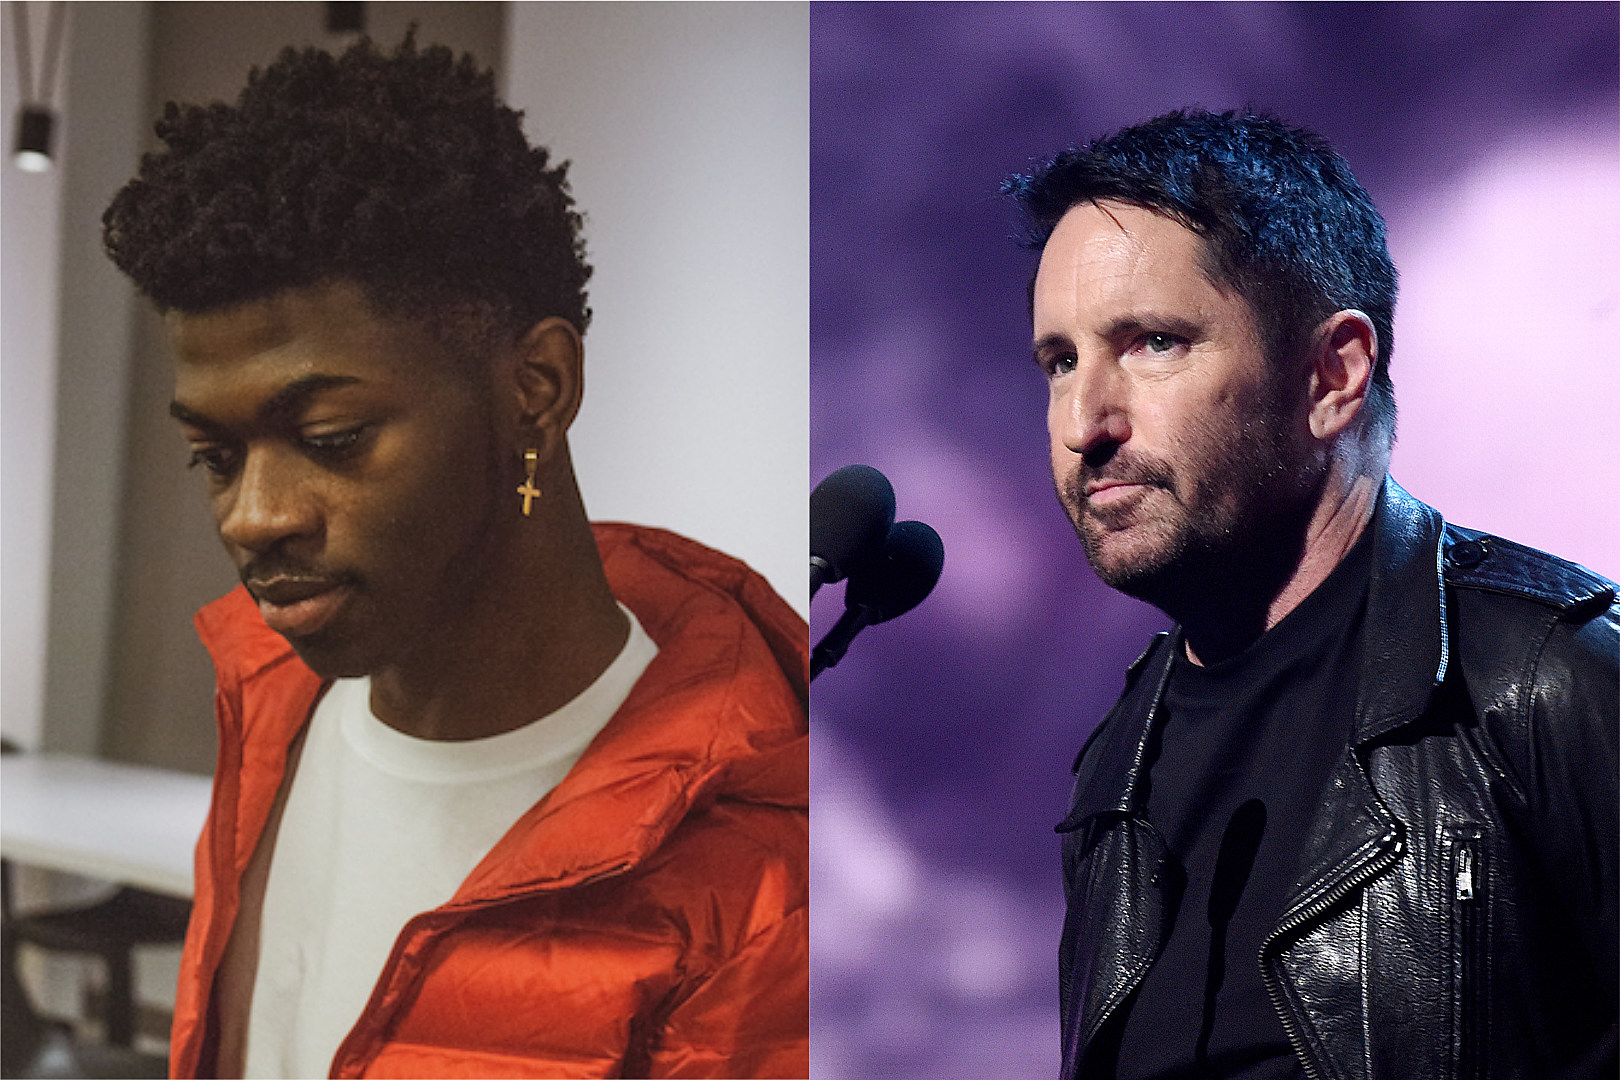 Trent Reznor + Atticus Ross Are Officially Country Music Award Winners